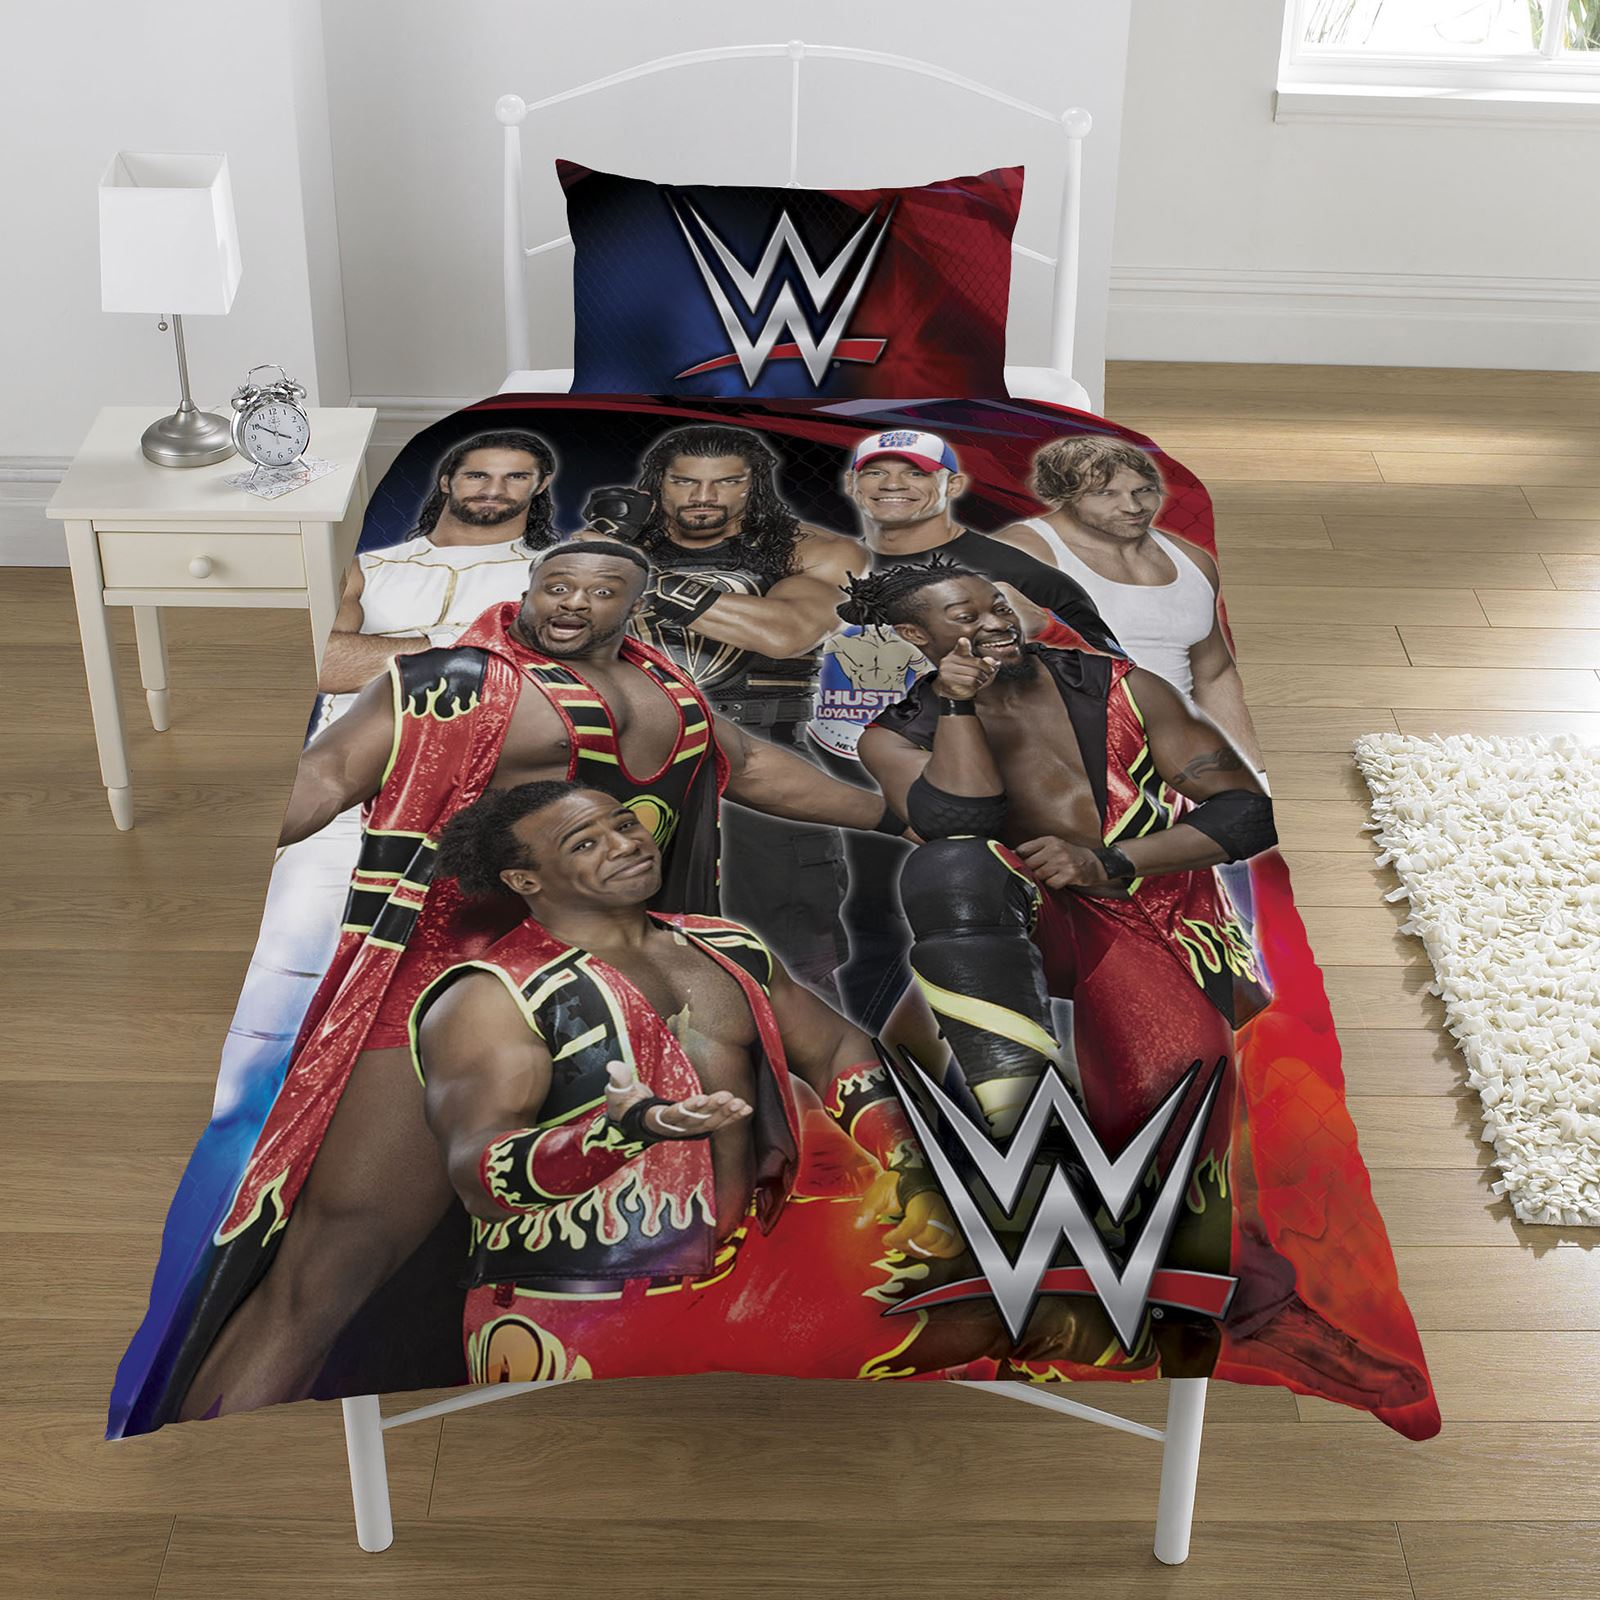 WWE SUPERSTARS SINGLE AND DOUBLE DUVET COVER SETS KIDS